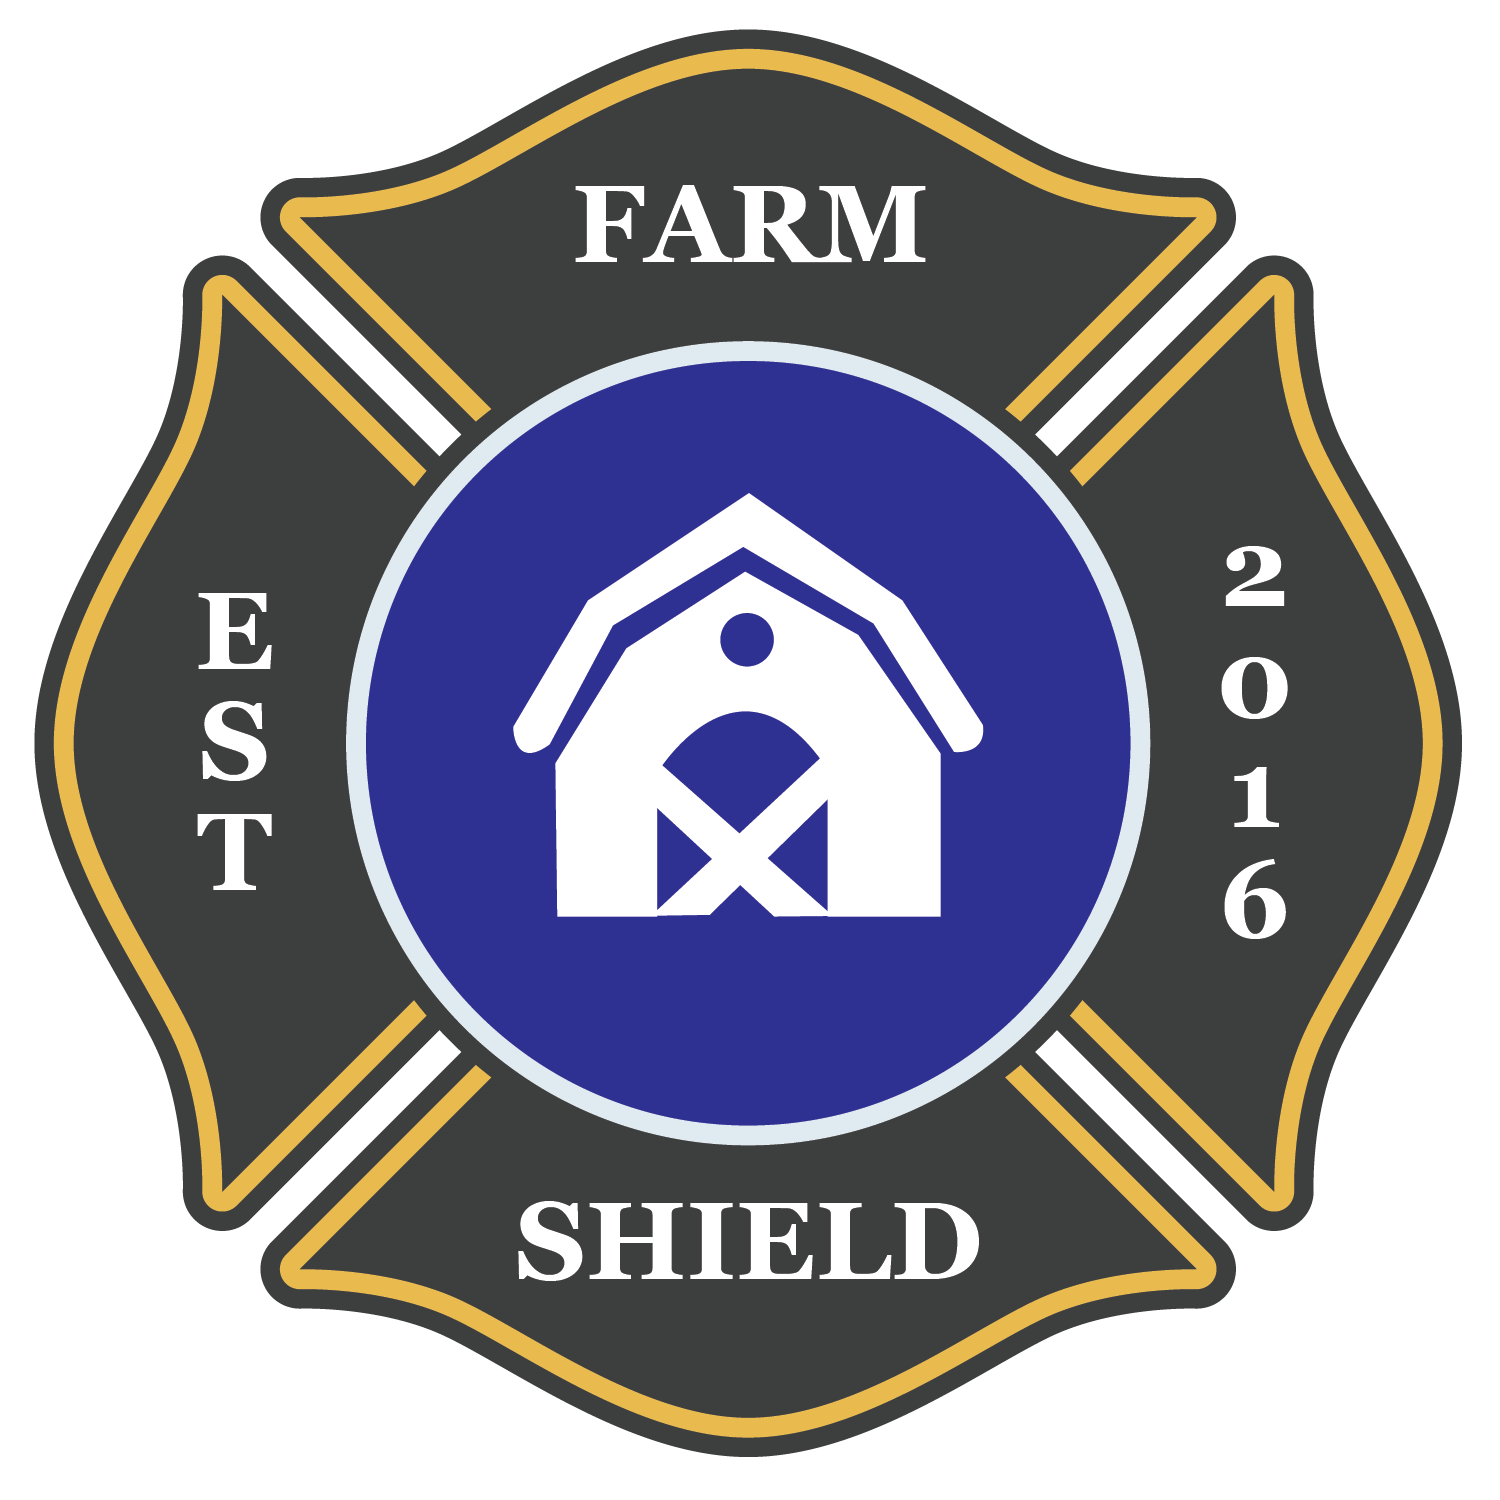 Farm Shield